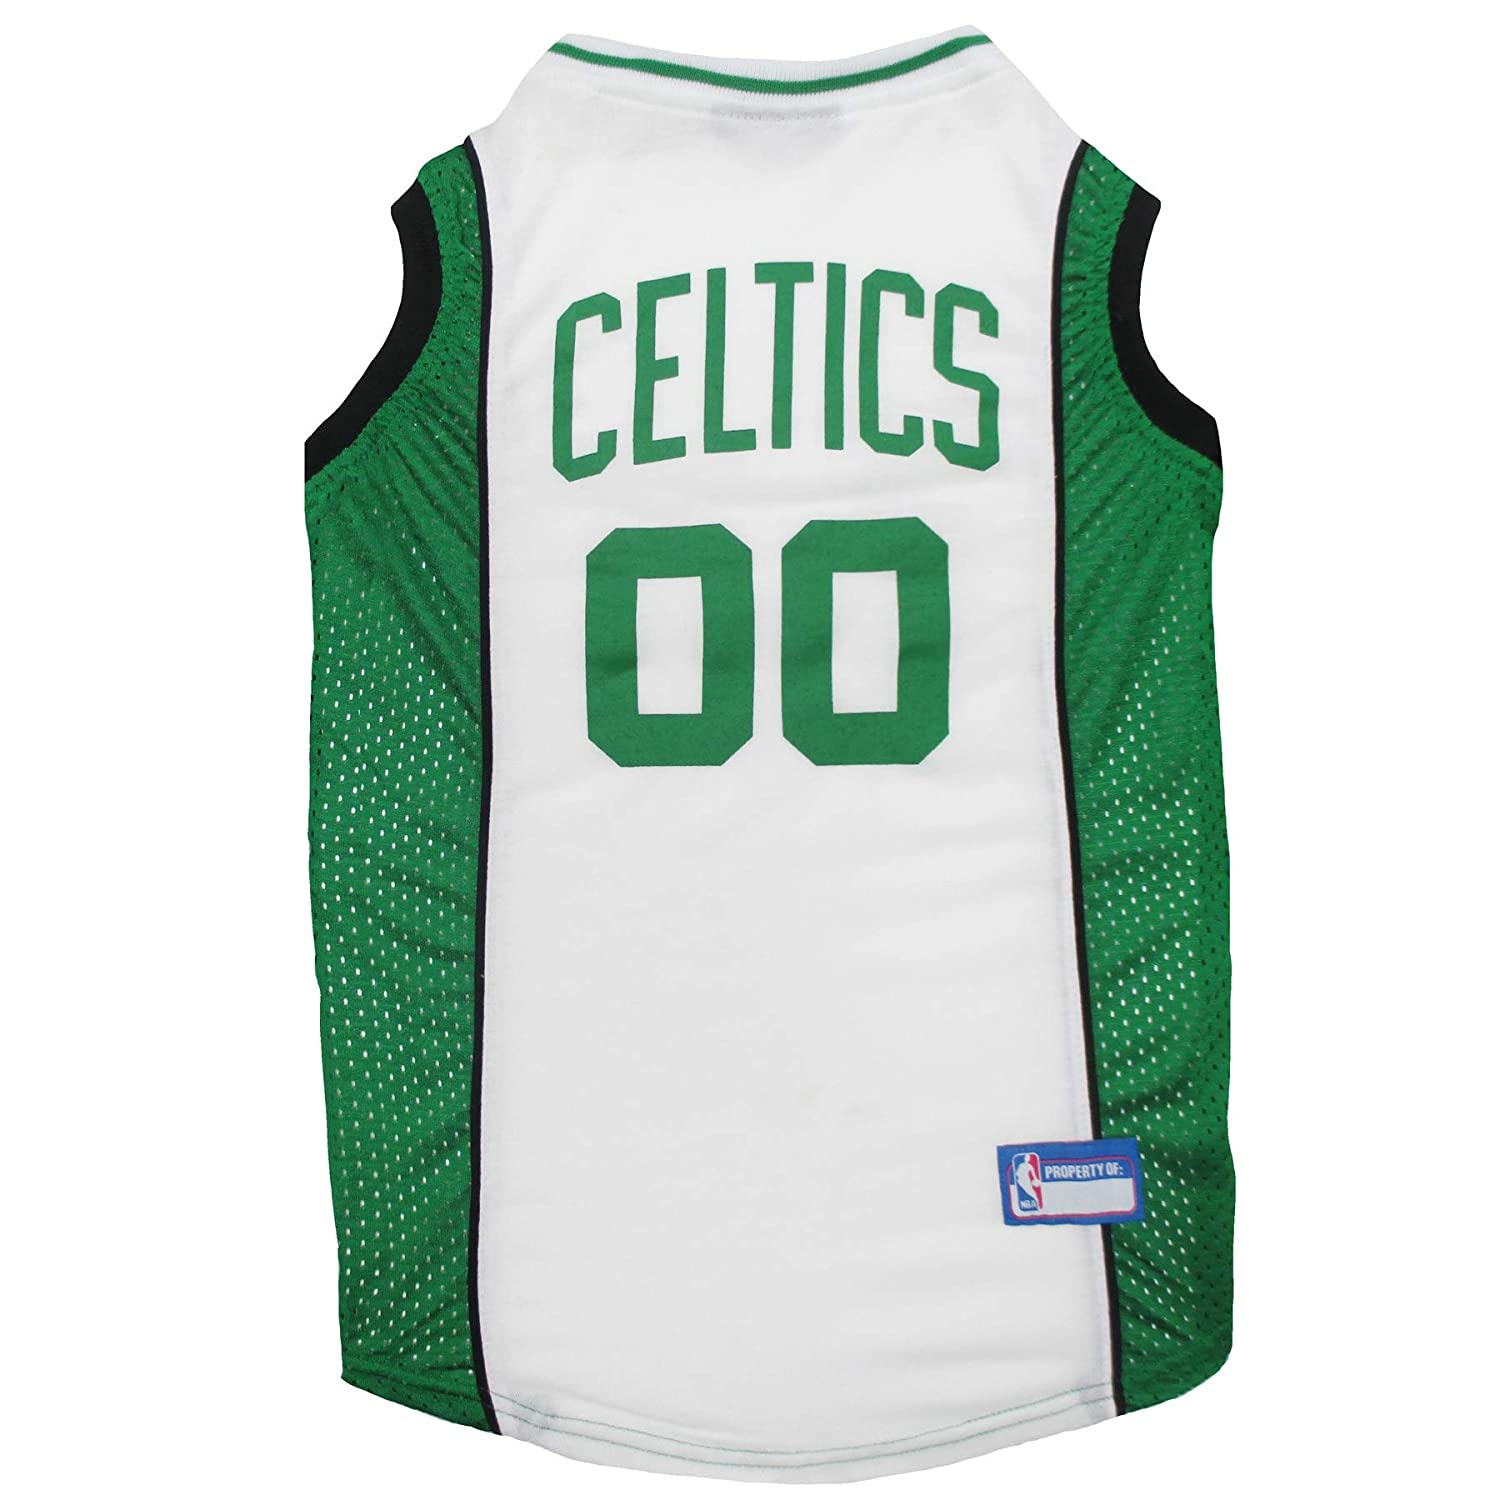 f02c32a45b0 NBA PET Apparel. - Licensed Jerseys for Dogs   Cats Available in 25  Basketball Teams   5 Sizes Cute pet Clothing for All Sports Fans. Best NBA  Dog Gear